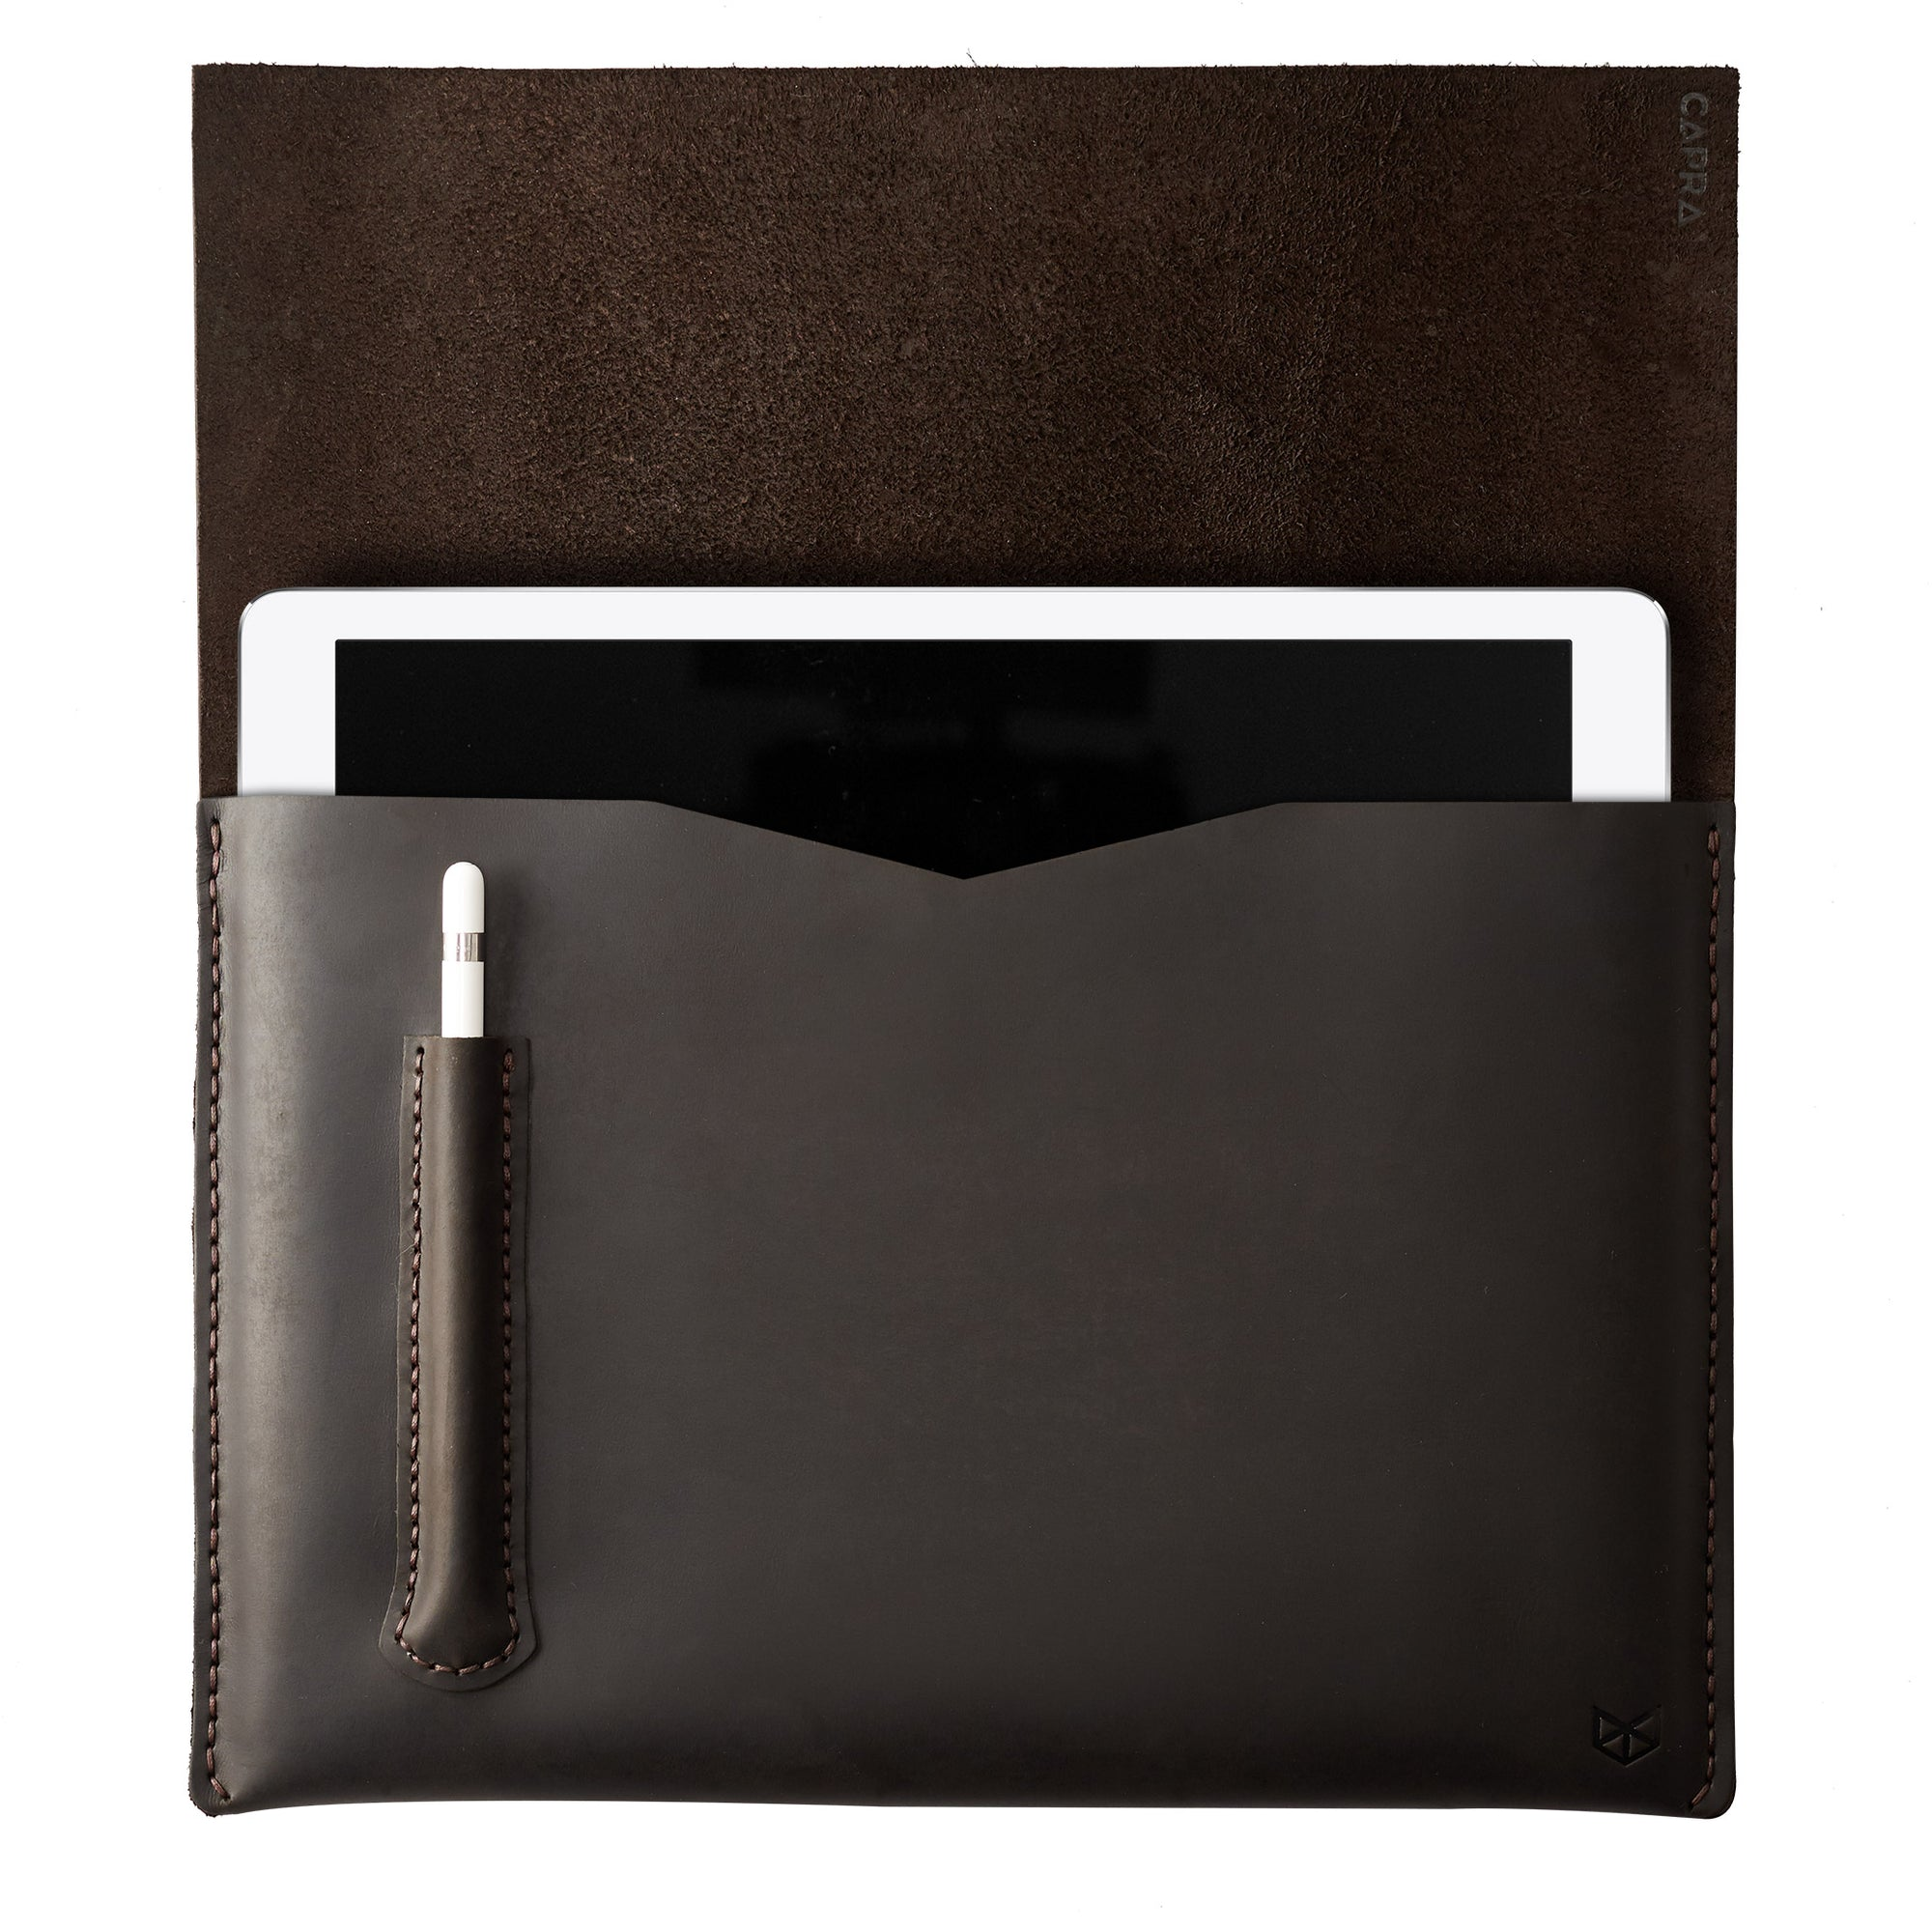 Dark brown iPad pro leather sleeve with apple pencil holder